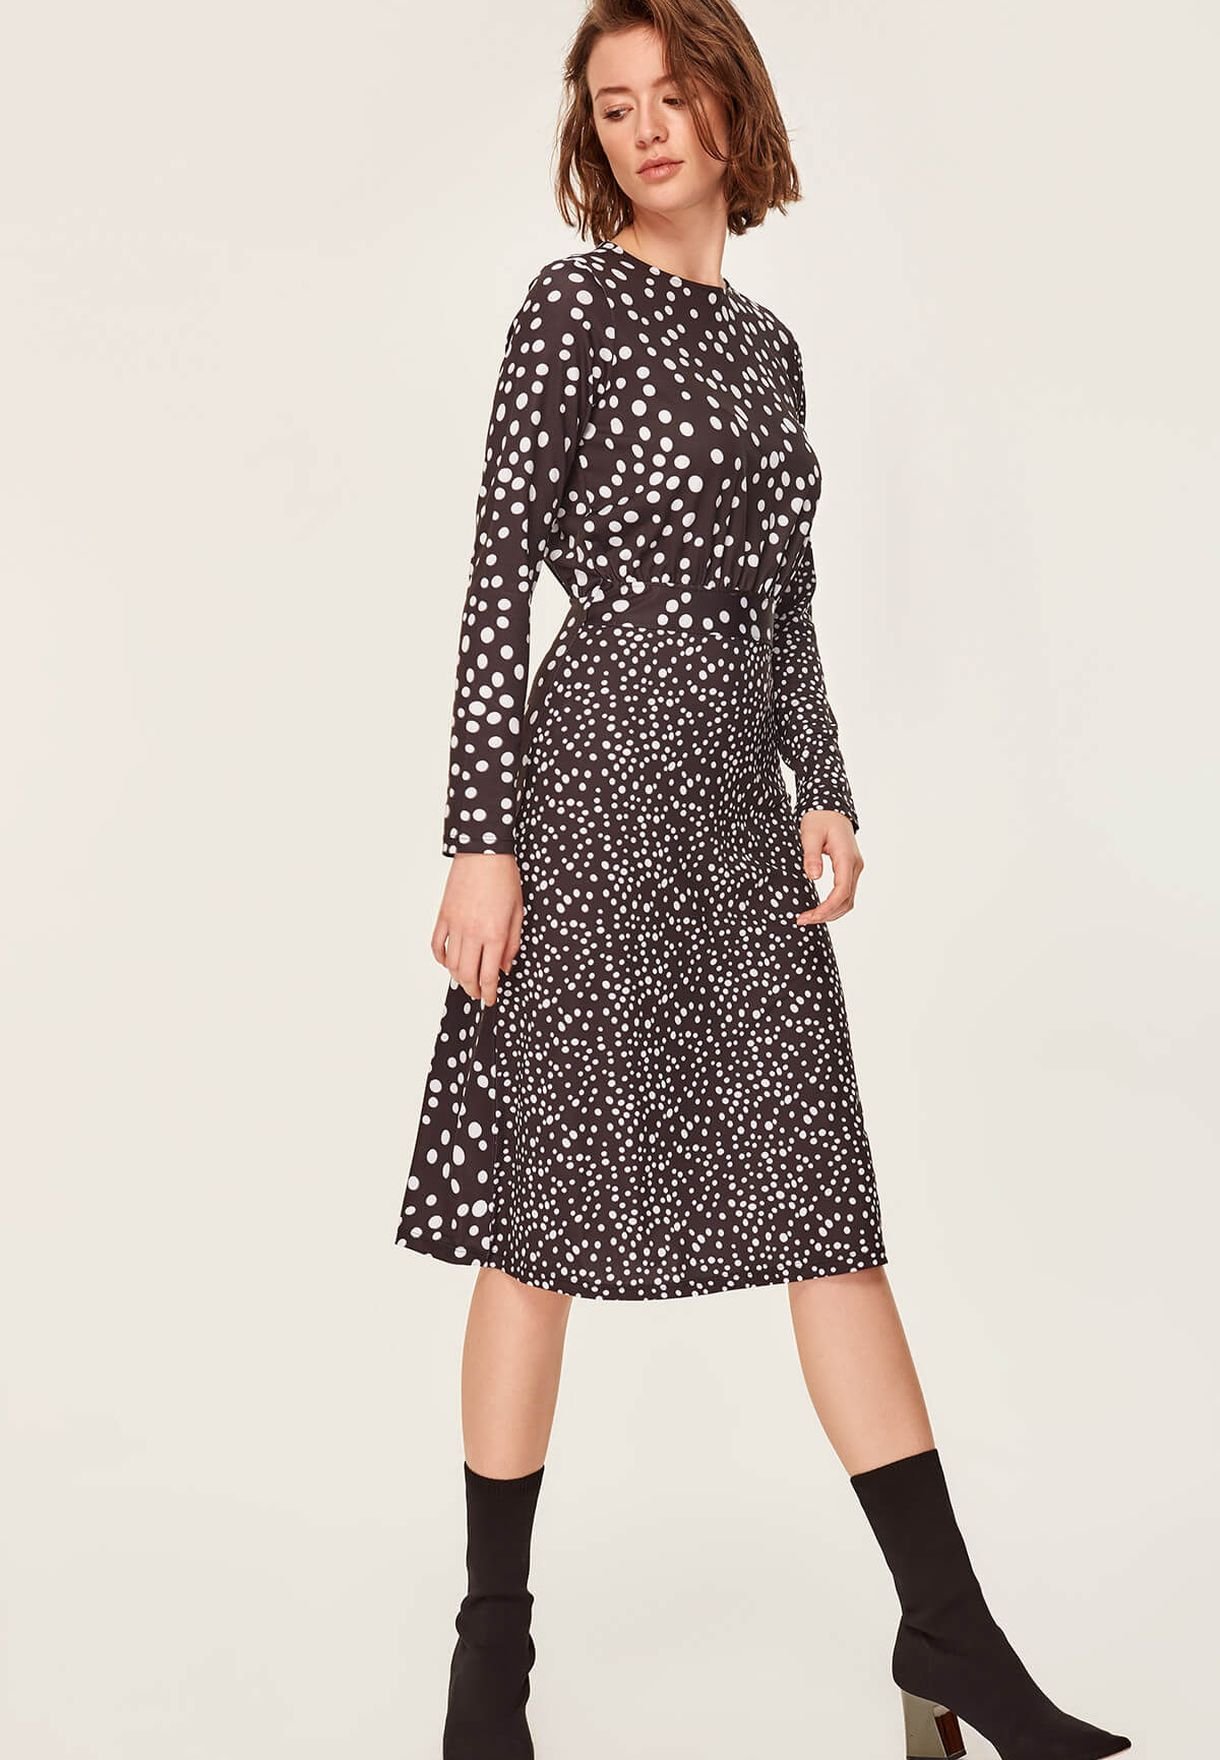 Buy Trendyol Black Polka Dot Dress For Women, Uae 27680atl5yrp